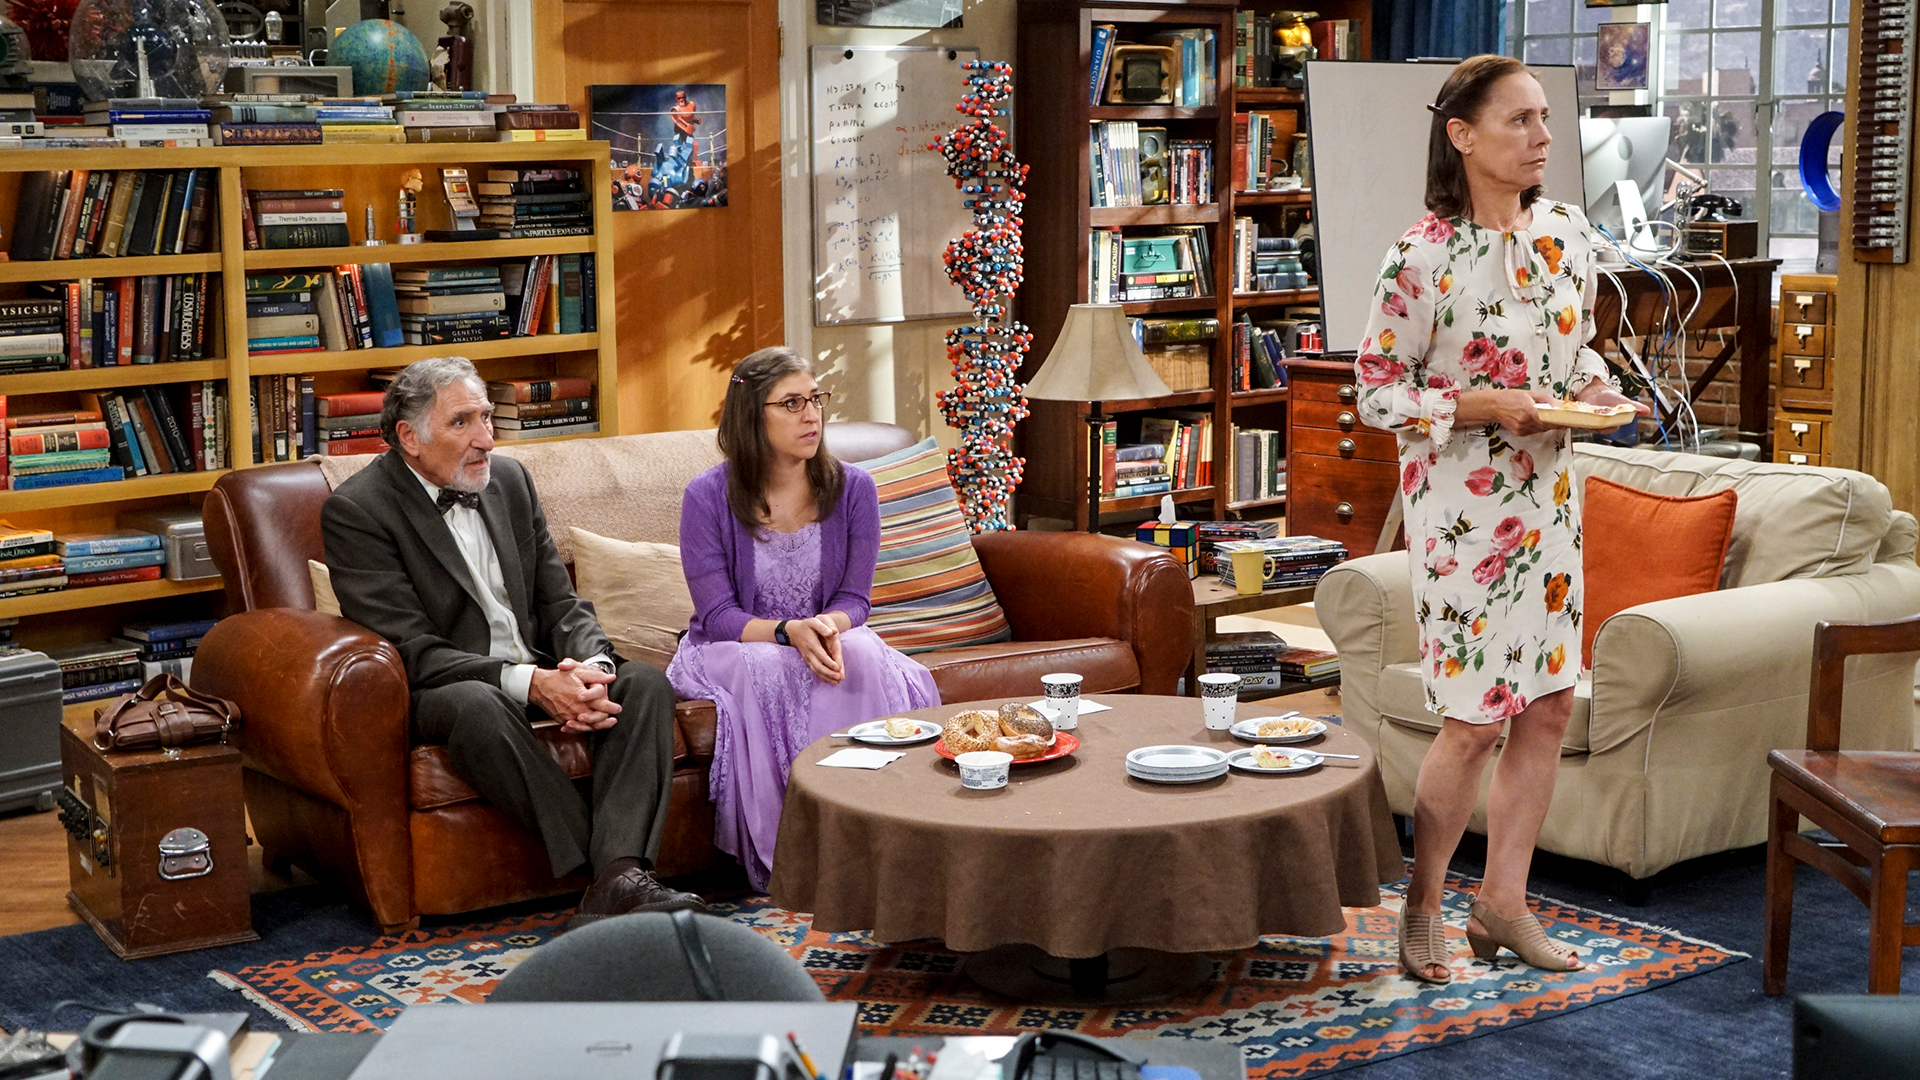 Sheldon's mom, Mary, has something to say to Amy and Alfred, Leonard's dad.